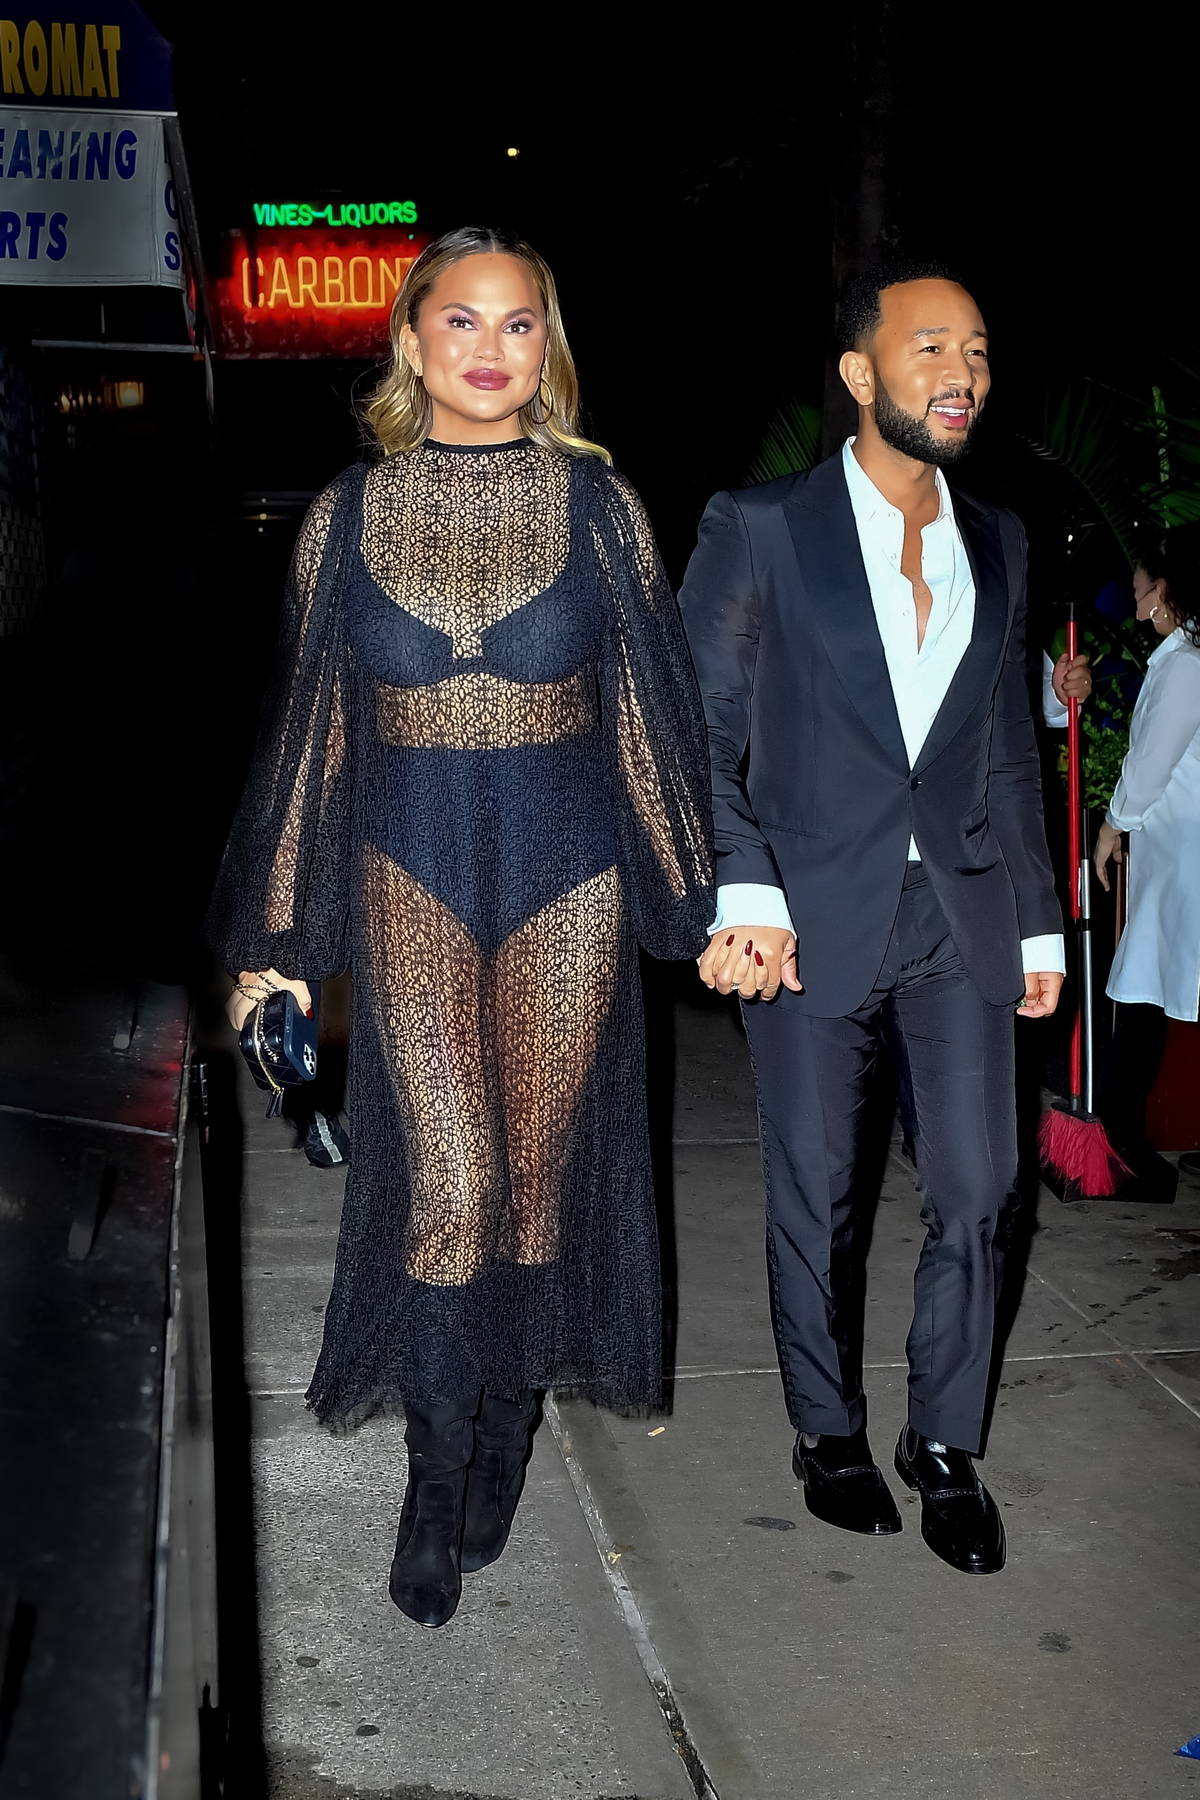 Chrissy Teigen stuns in a sheer dress during a date night with John Legend in New York City